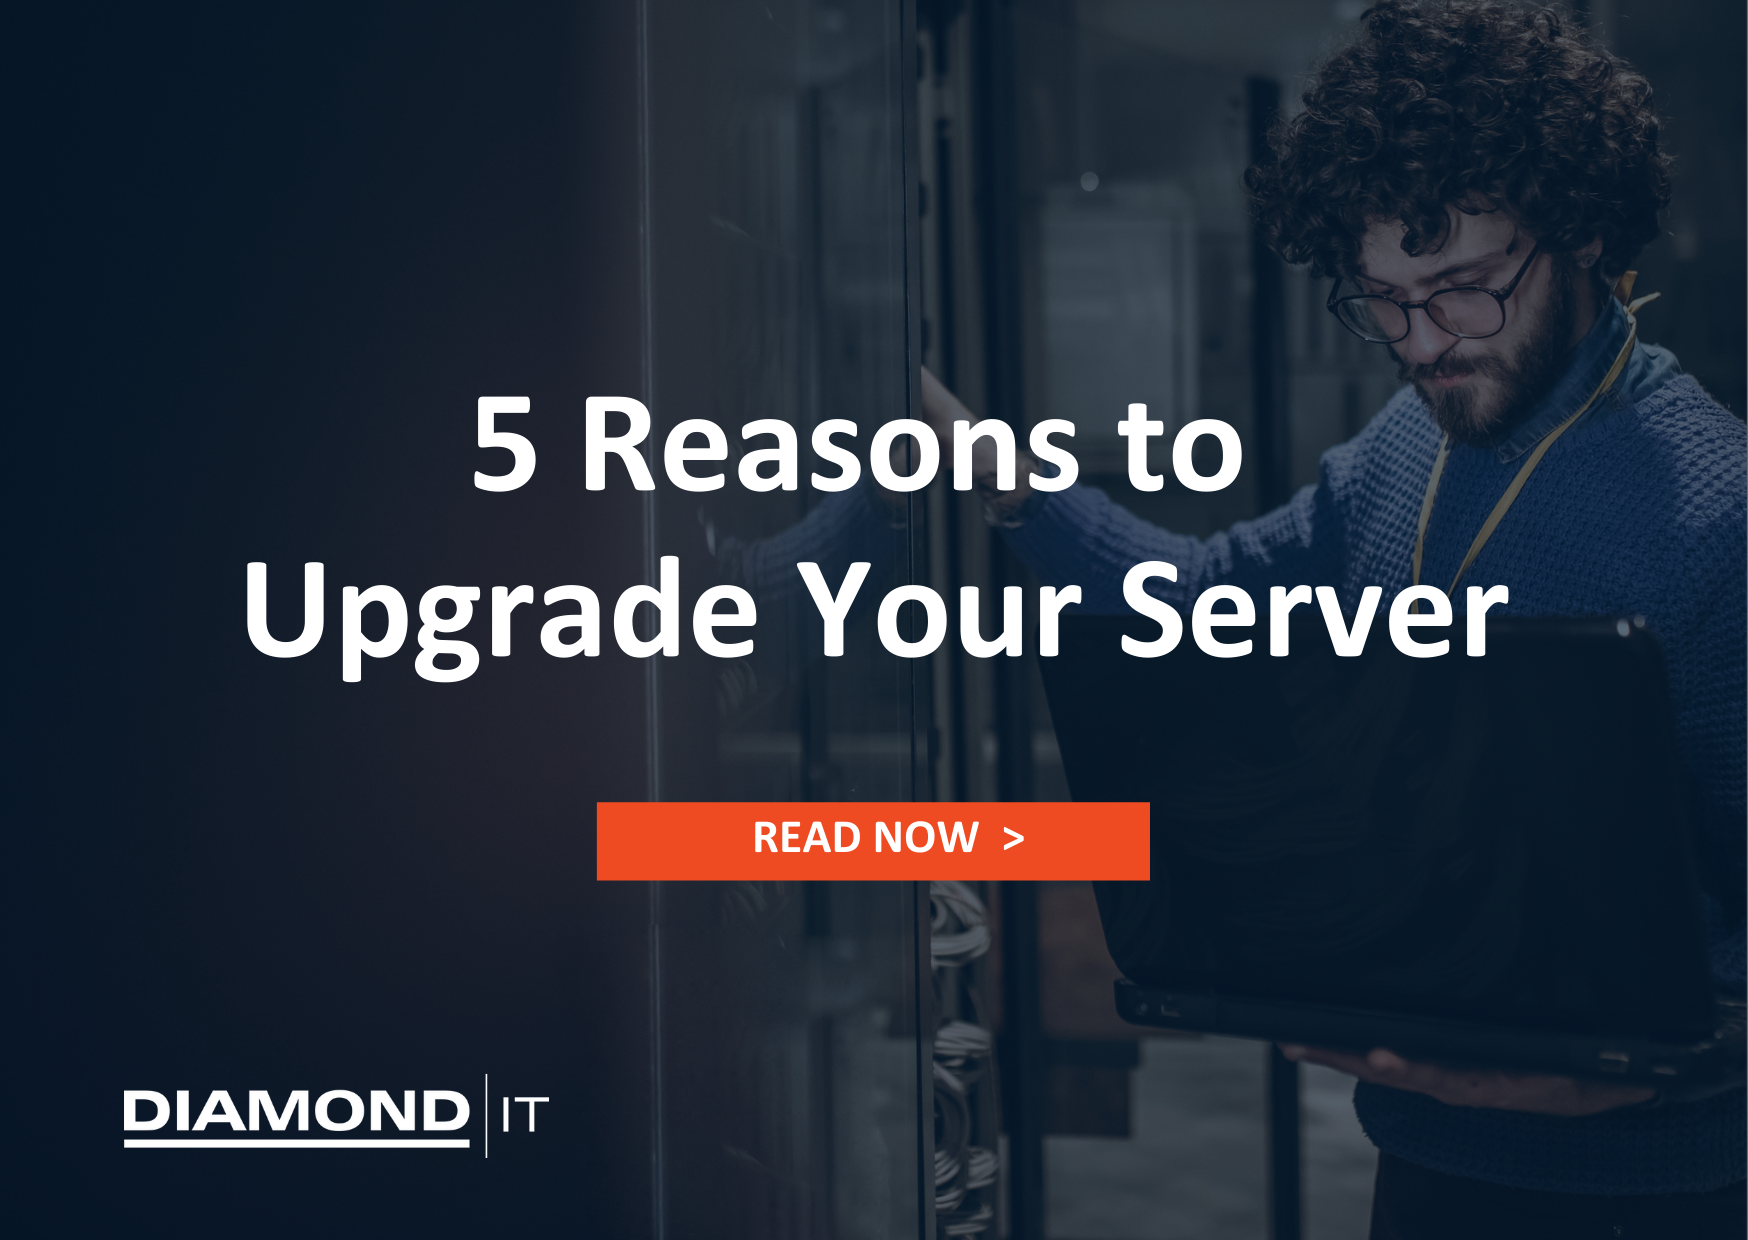 5 Reasons to Upgrade Your Server